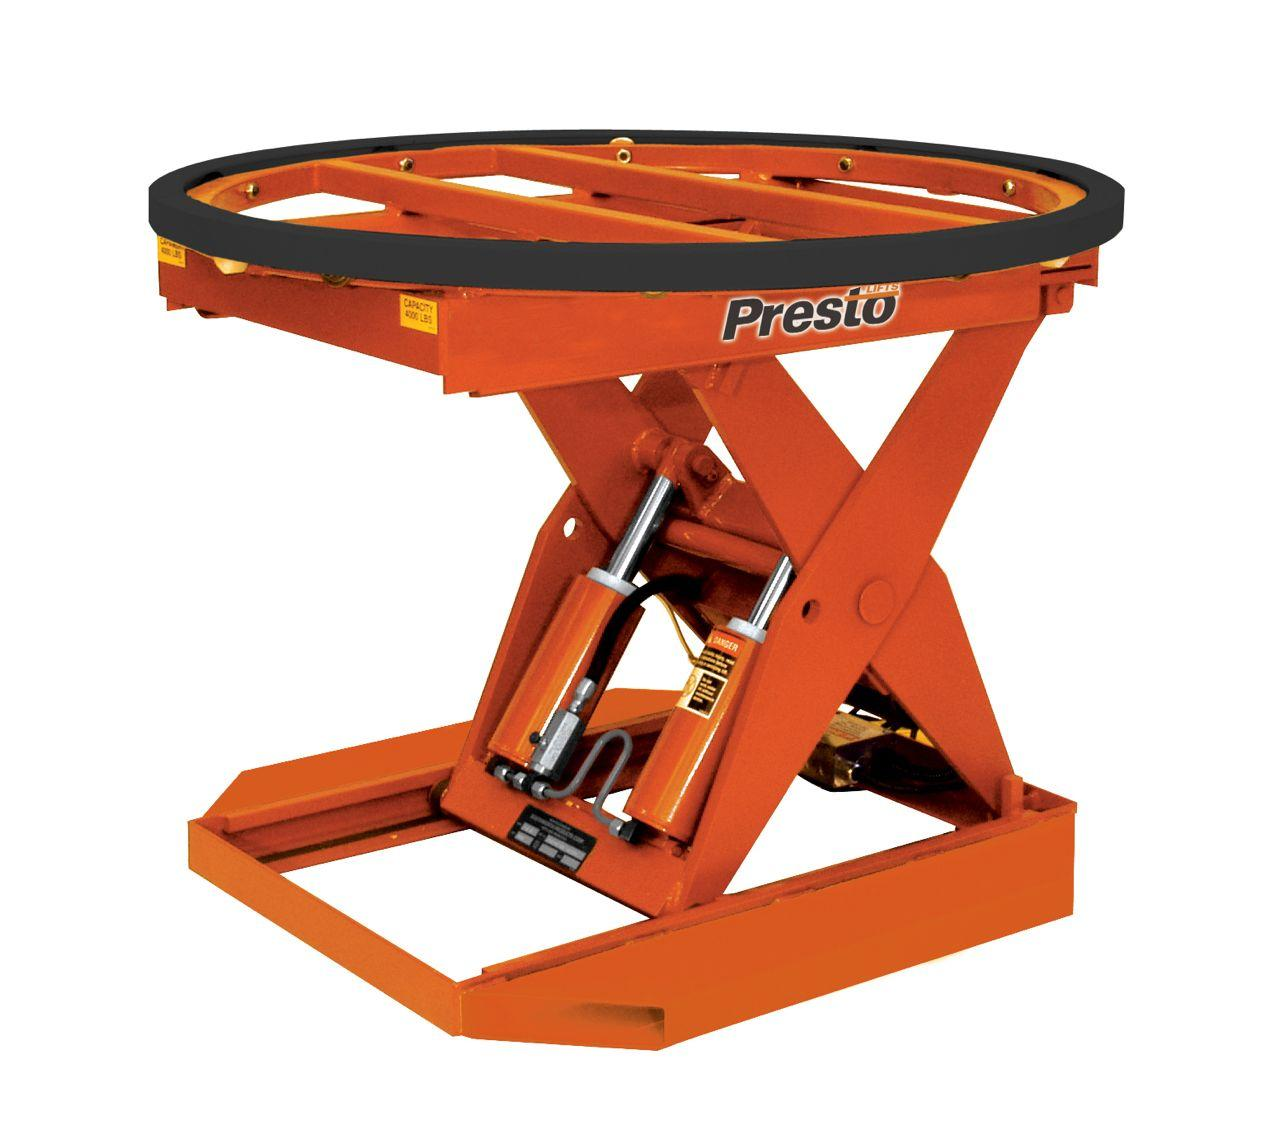 Presto P3 Powered Pallet Positioner